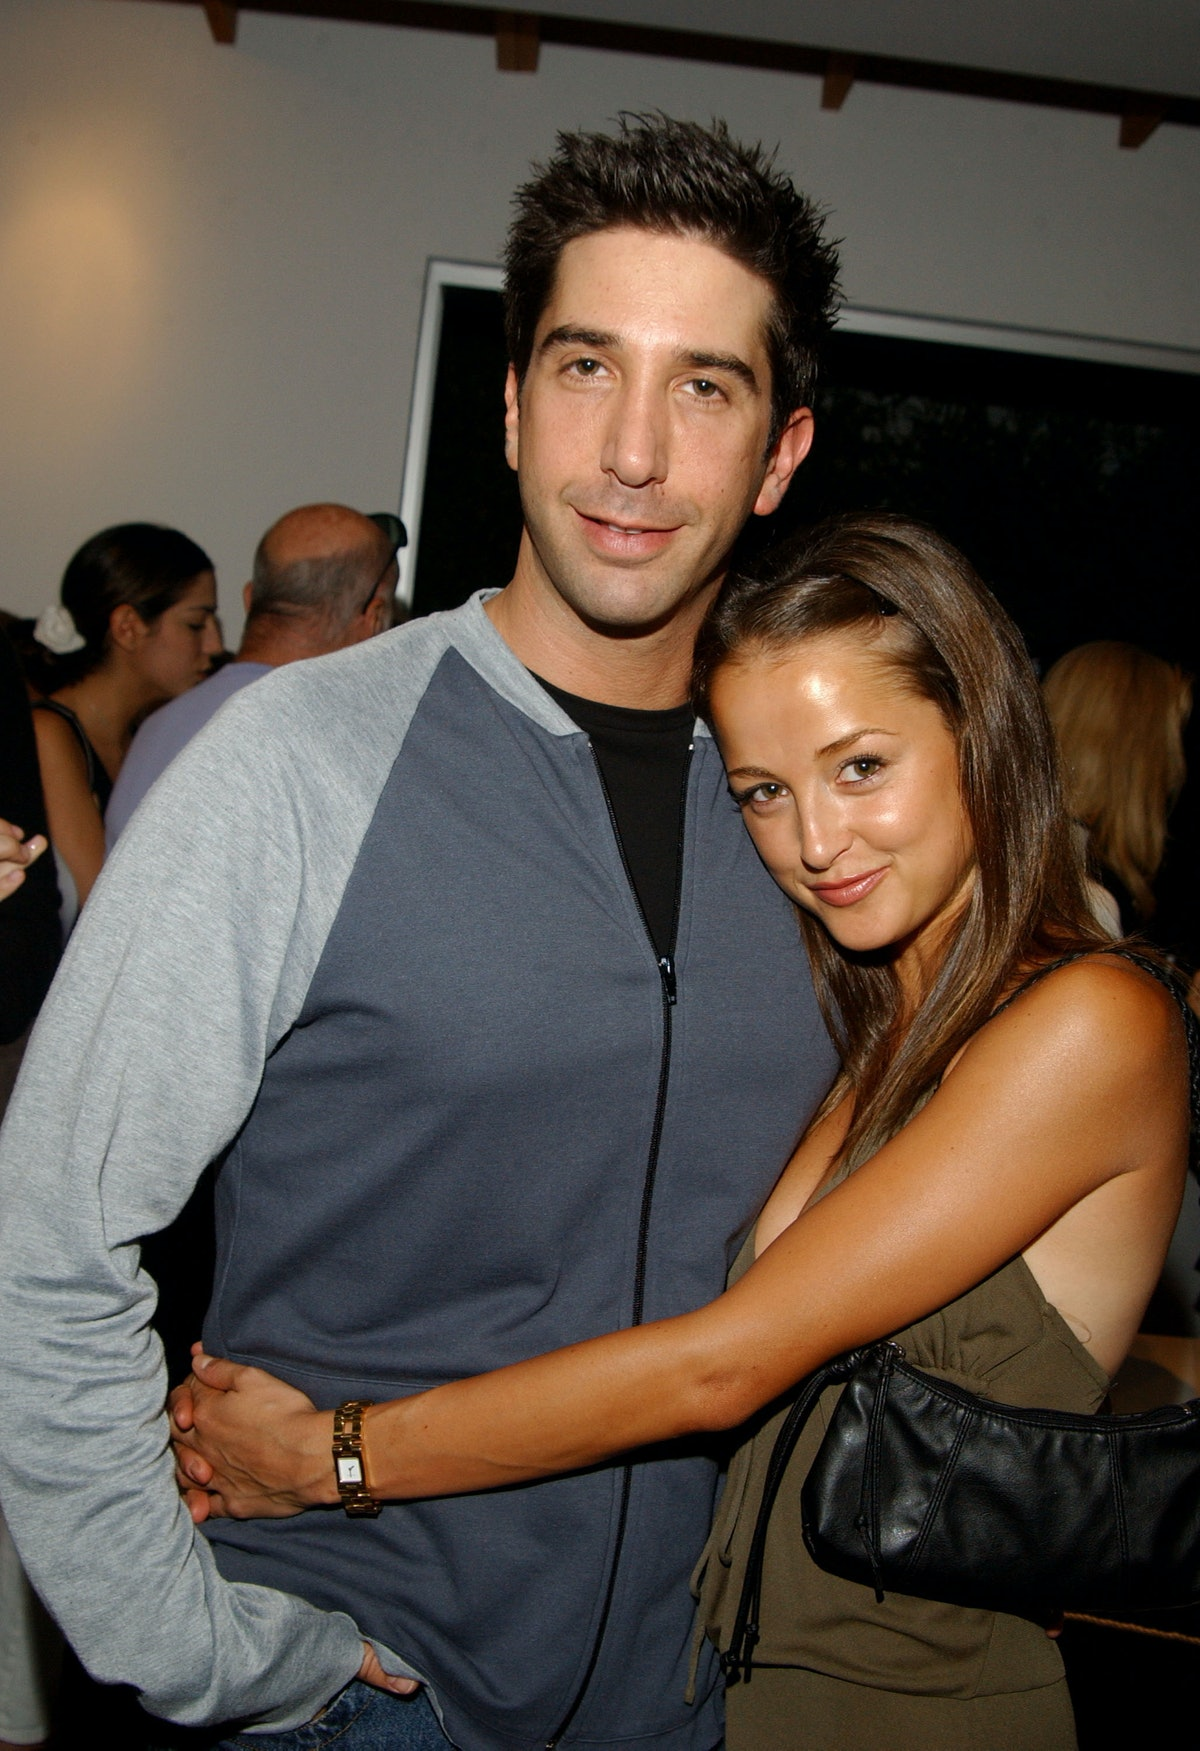 David Schwimmer and Carla Alapont dated.